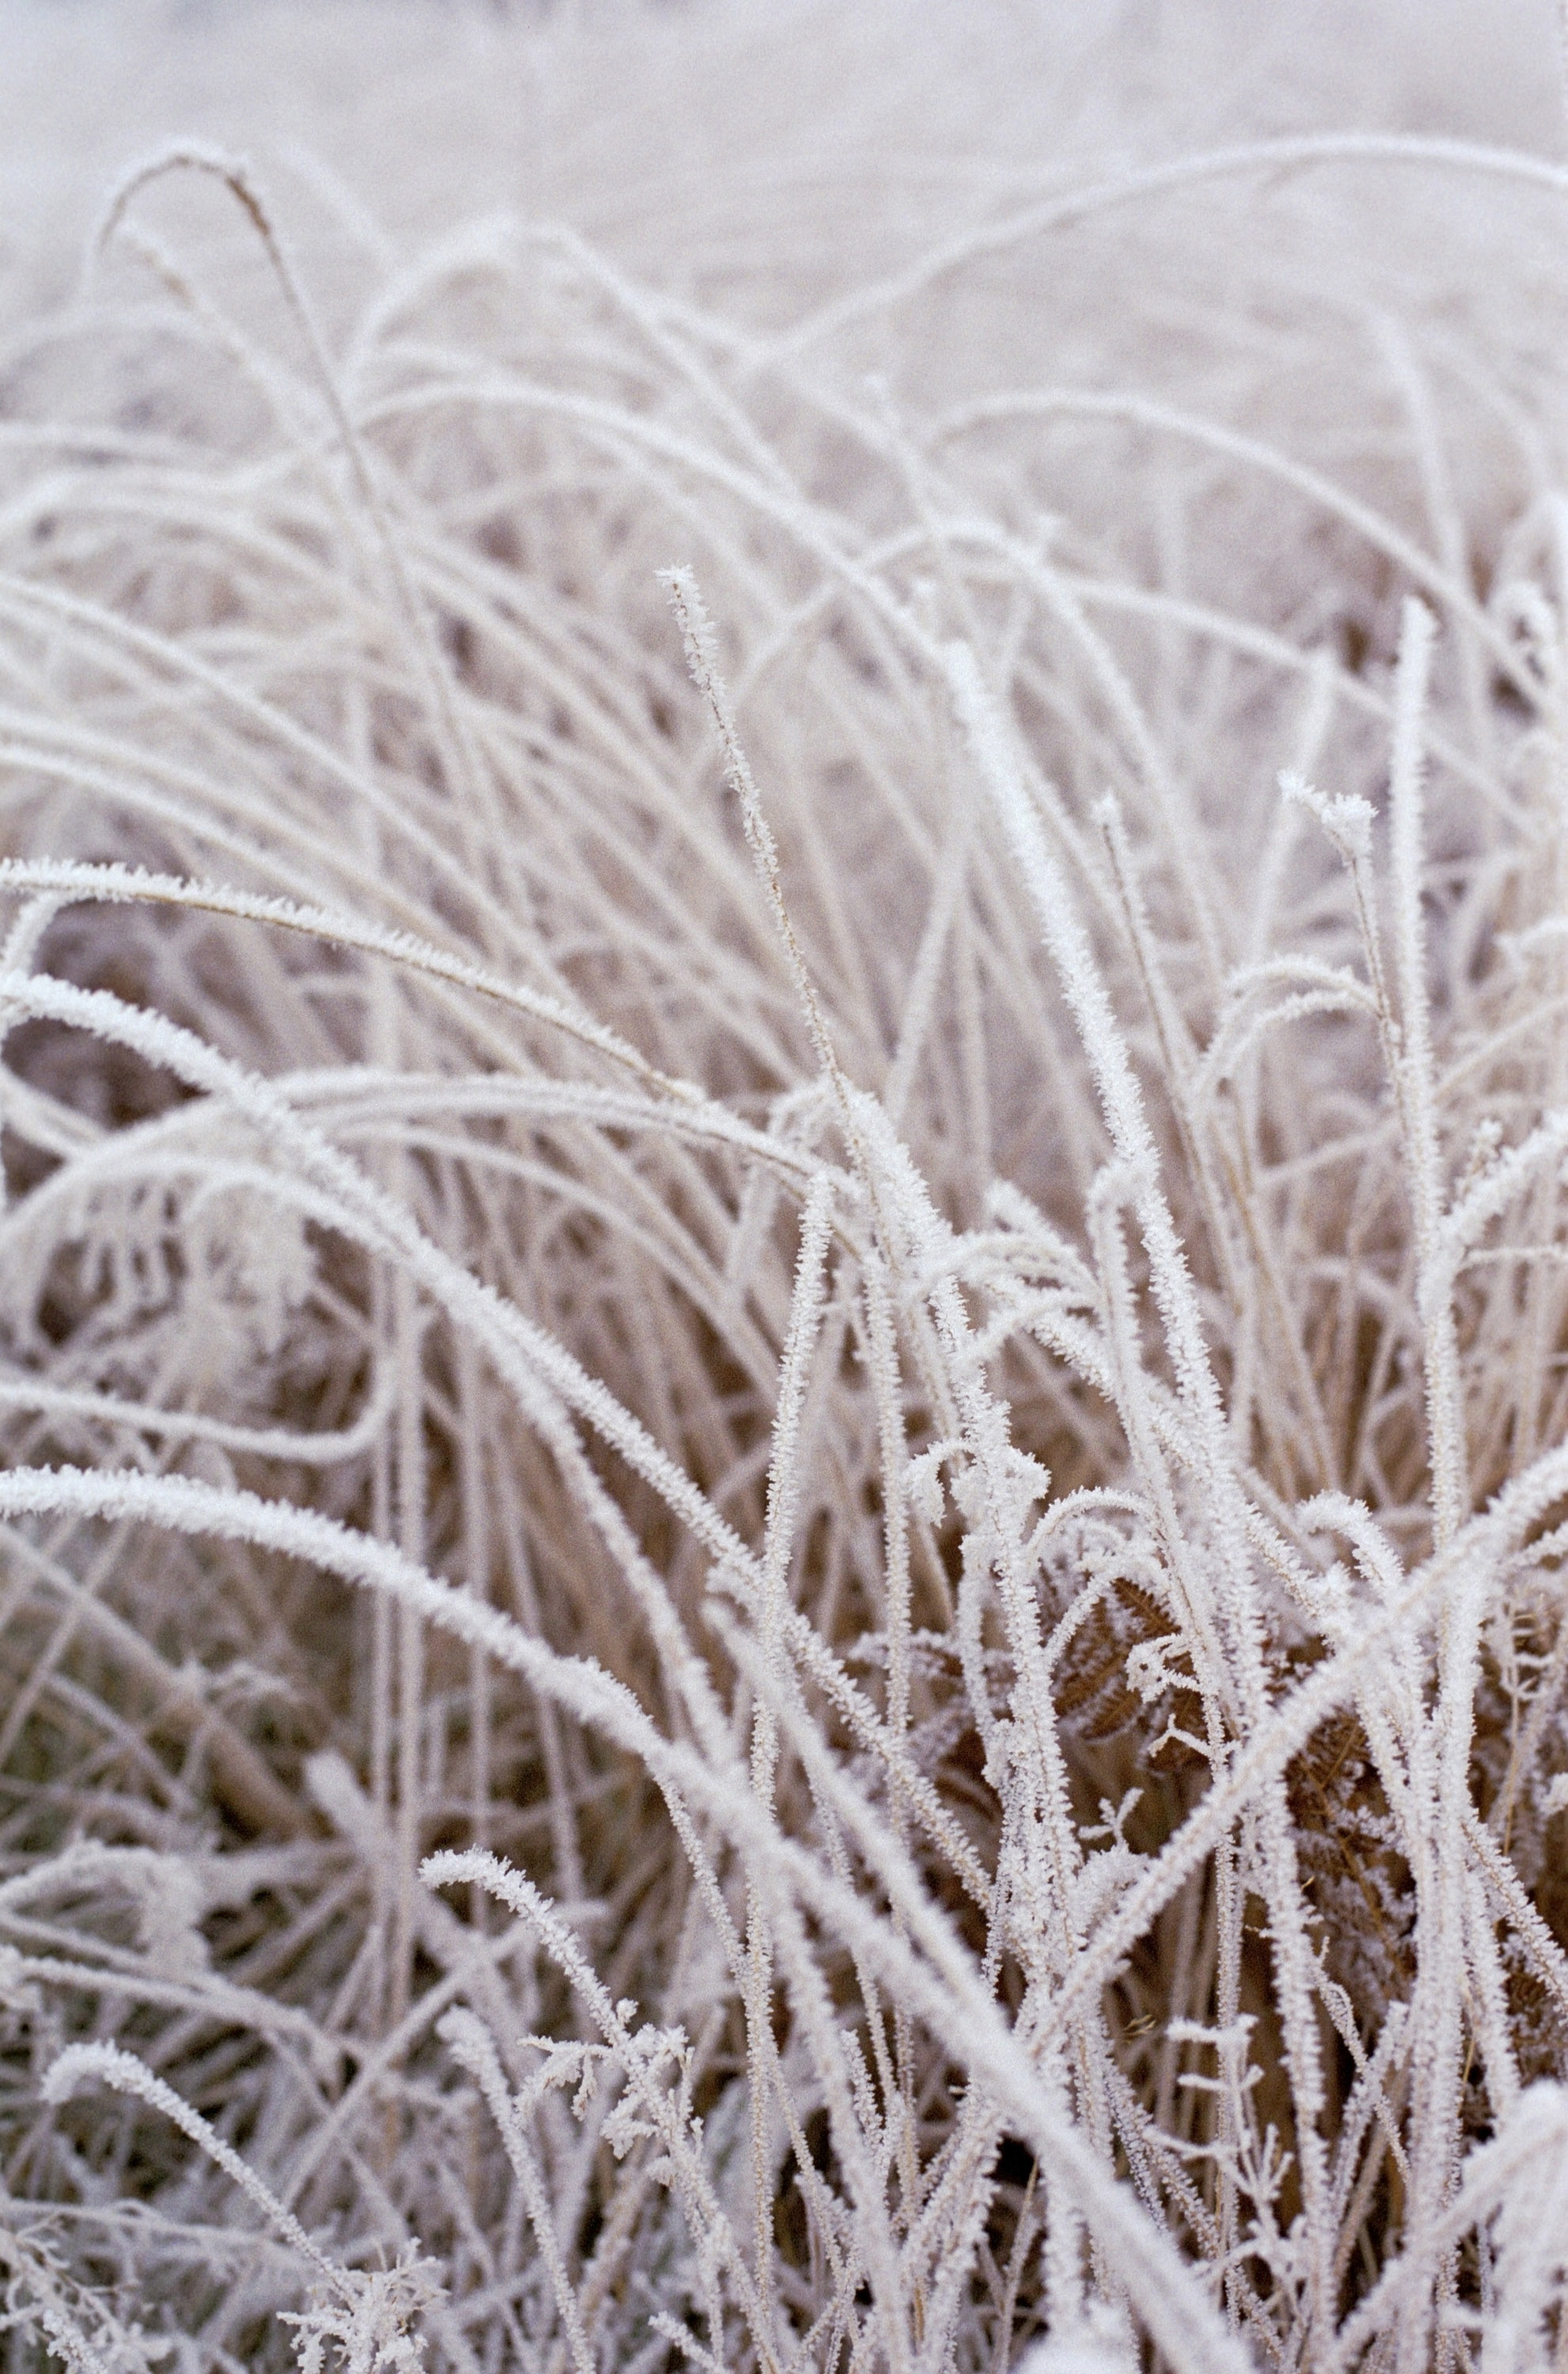 long grass on a very cold winter morning covered in frost crystals